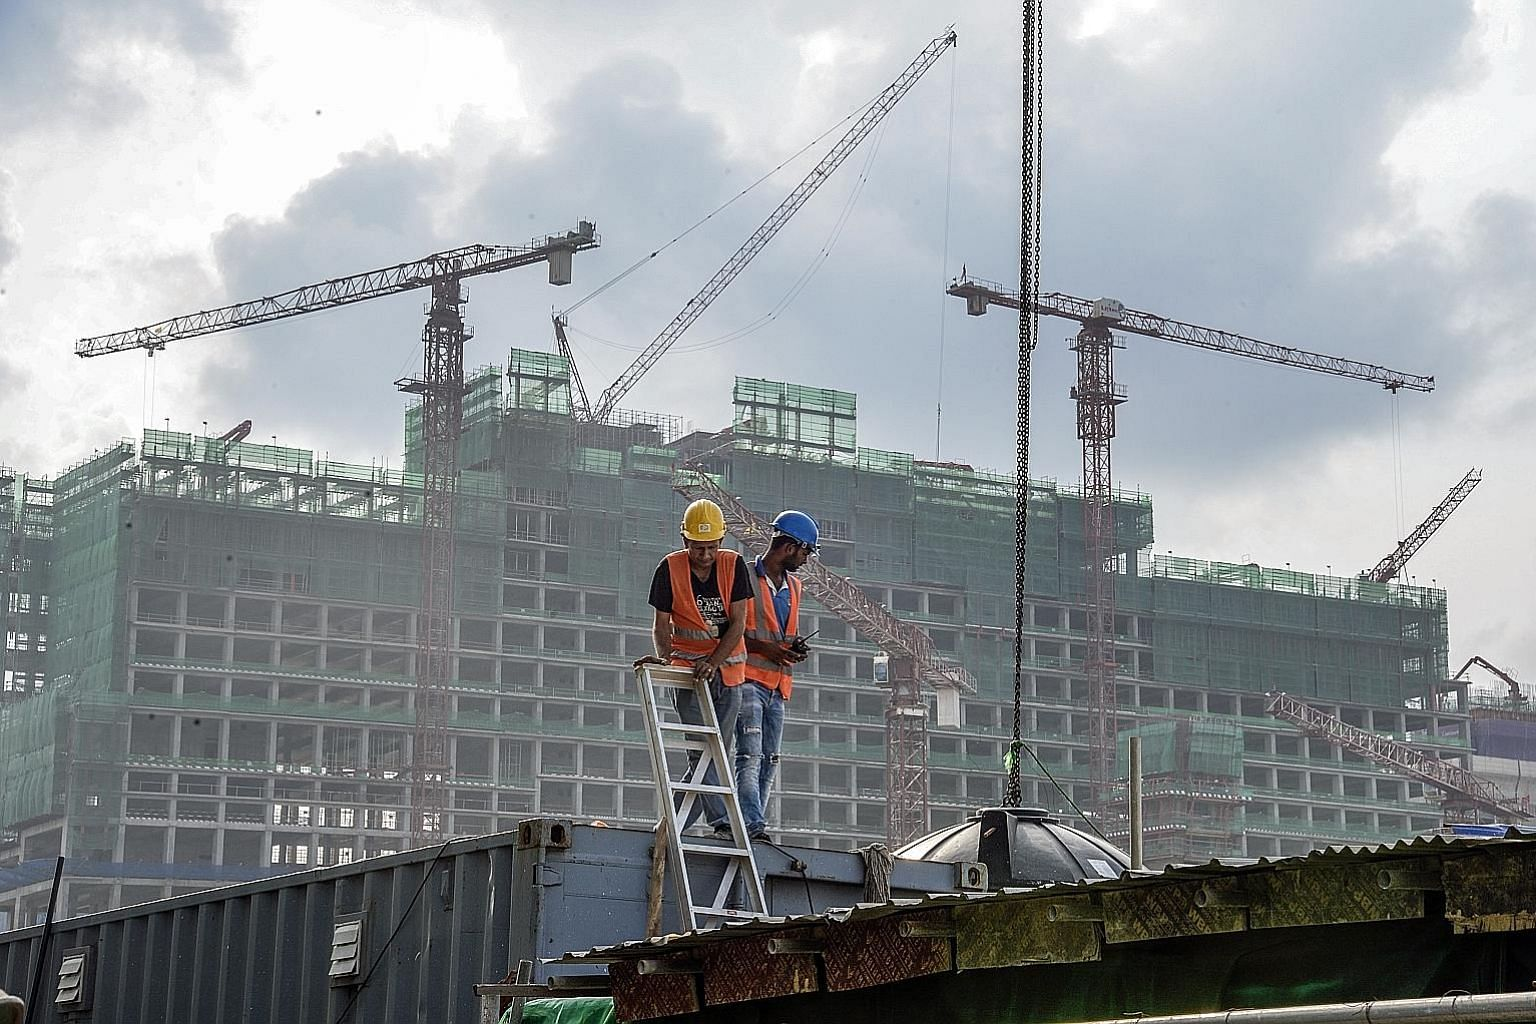 Workers at a project developed by China Harbour Engineering in Sri Lanka. The country has been forced into debt-for-equity arrangements, with China taking over operations at Hambantota Port, which it helped finance and build, after the government str